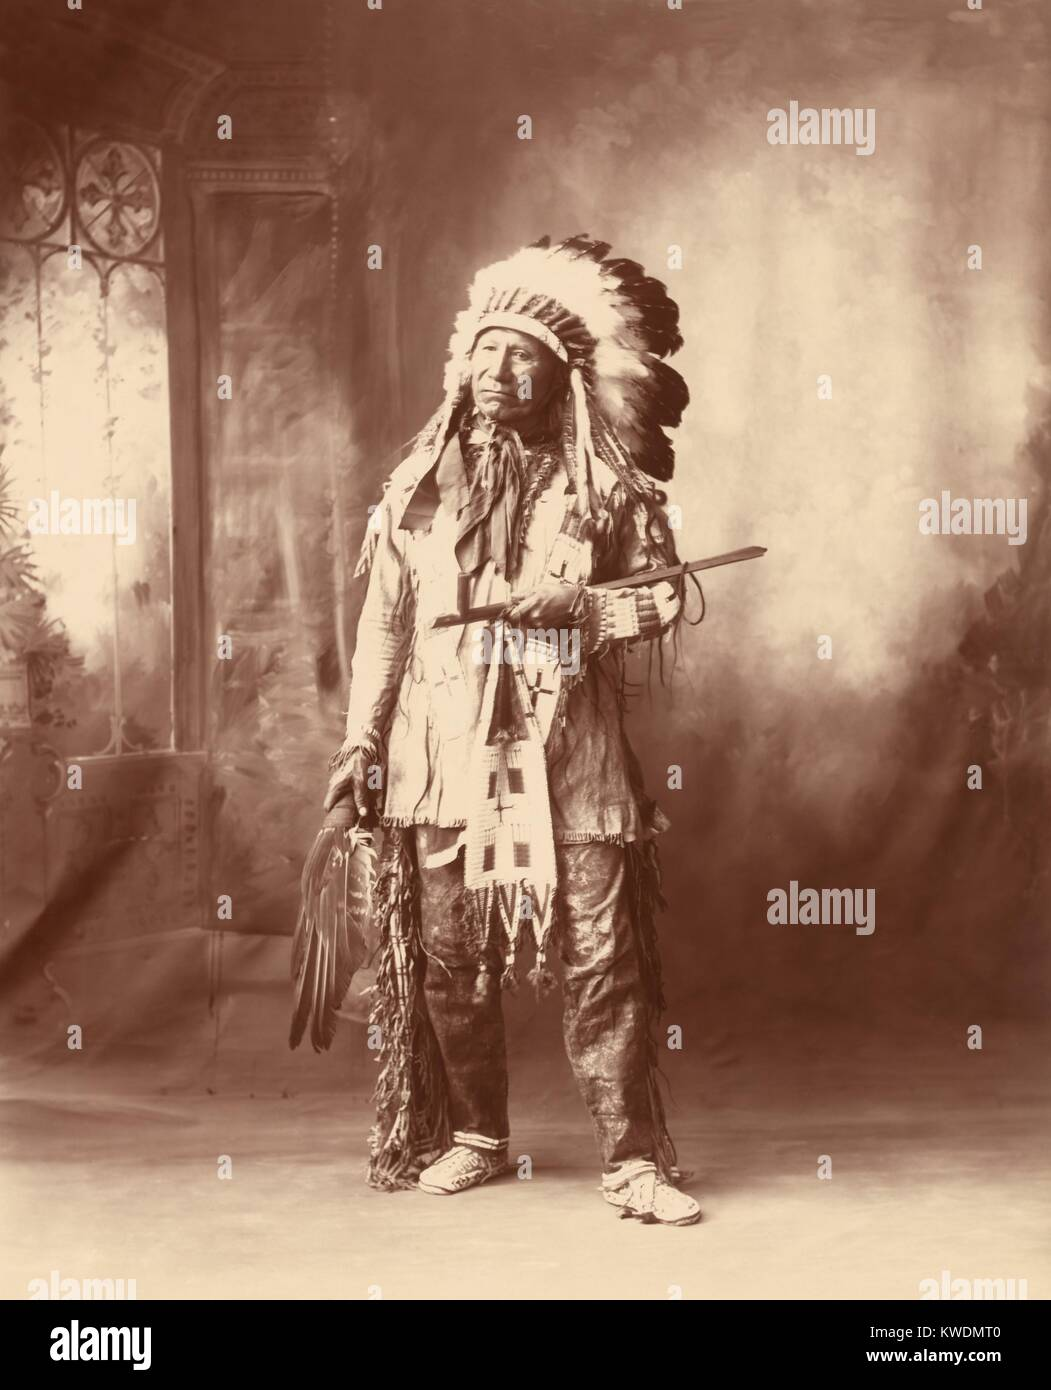 Chief American Horse, Oglala division of Lakota, a progressive Native American. He was a Scout for the US Army, Stock Photo